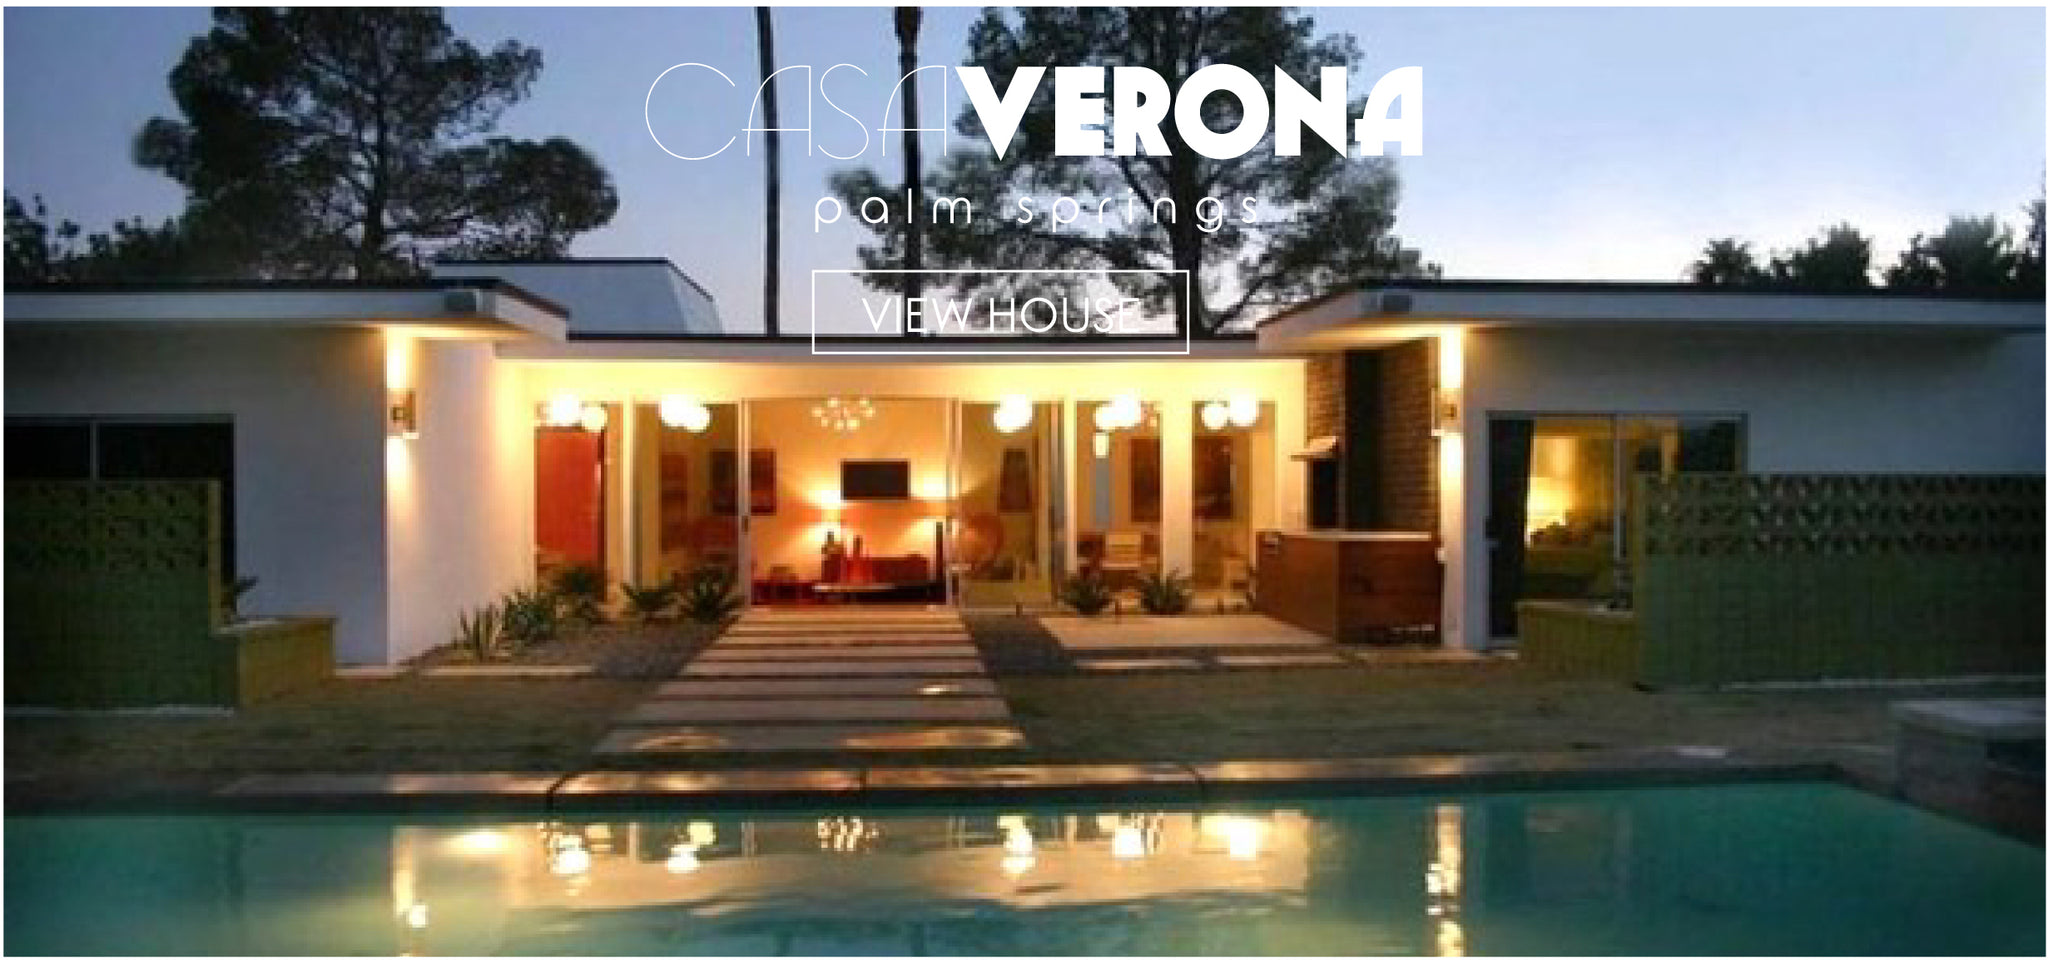 Modern-style, one-story home with pool, lit up at evening, 'Casa Verona Palm Springs' and 'View House' in white print overlay